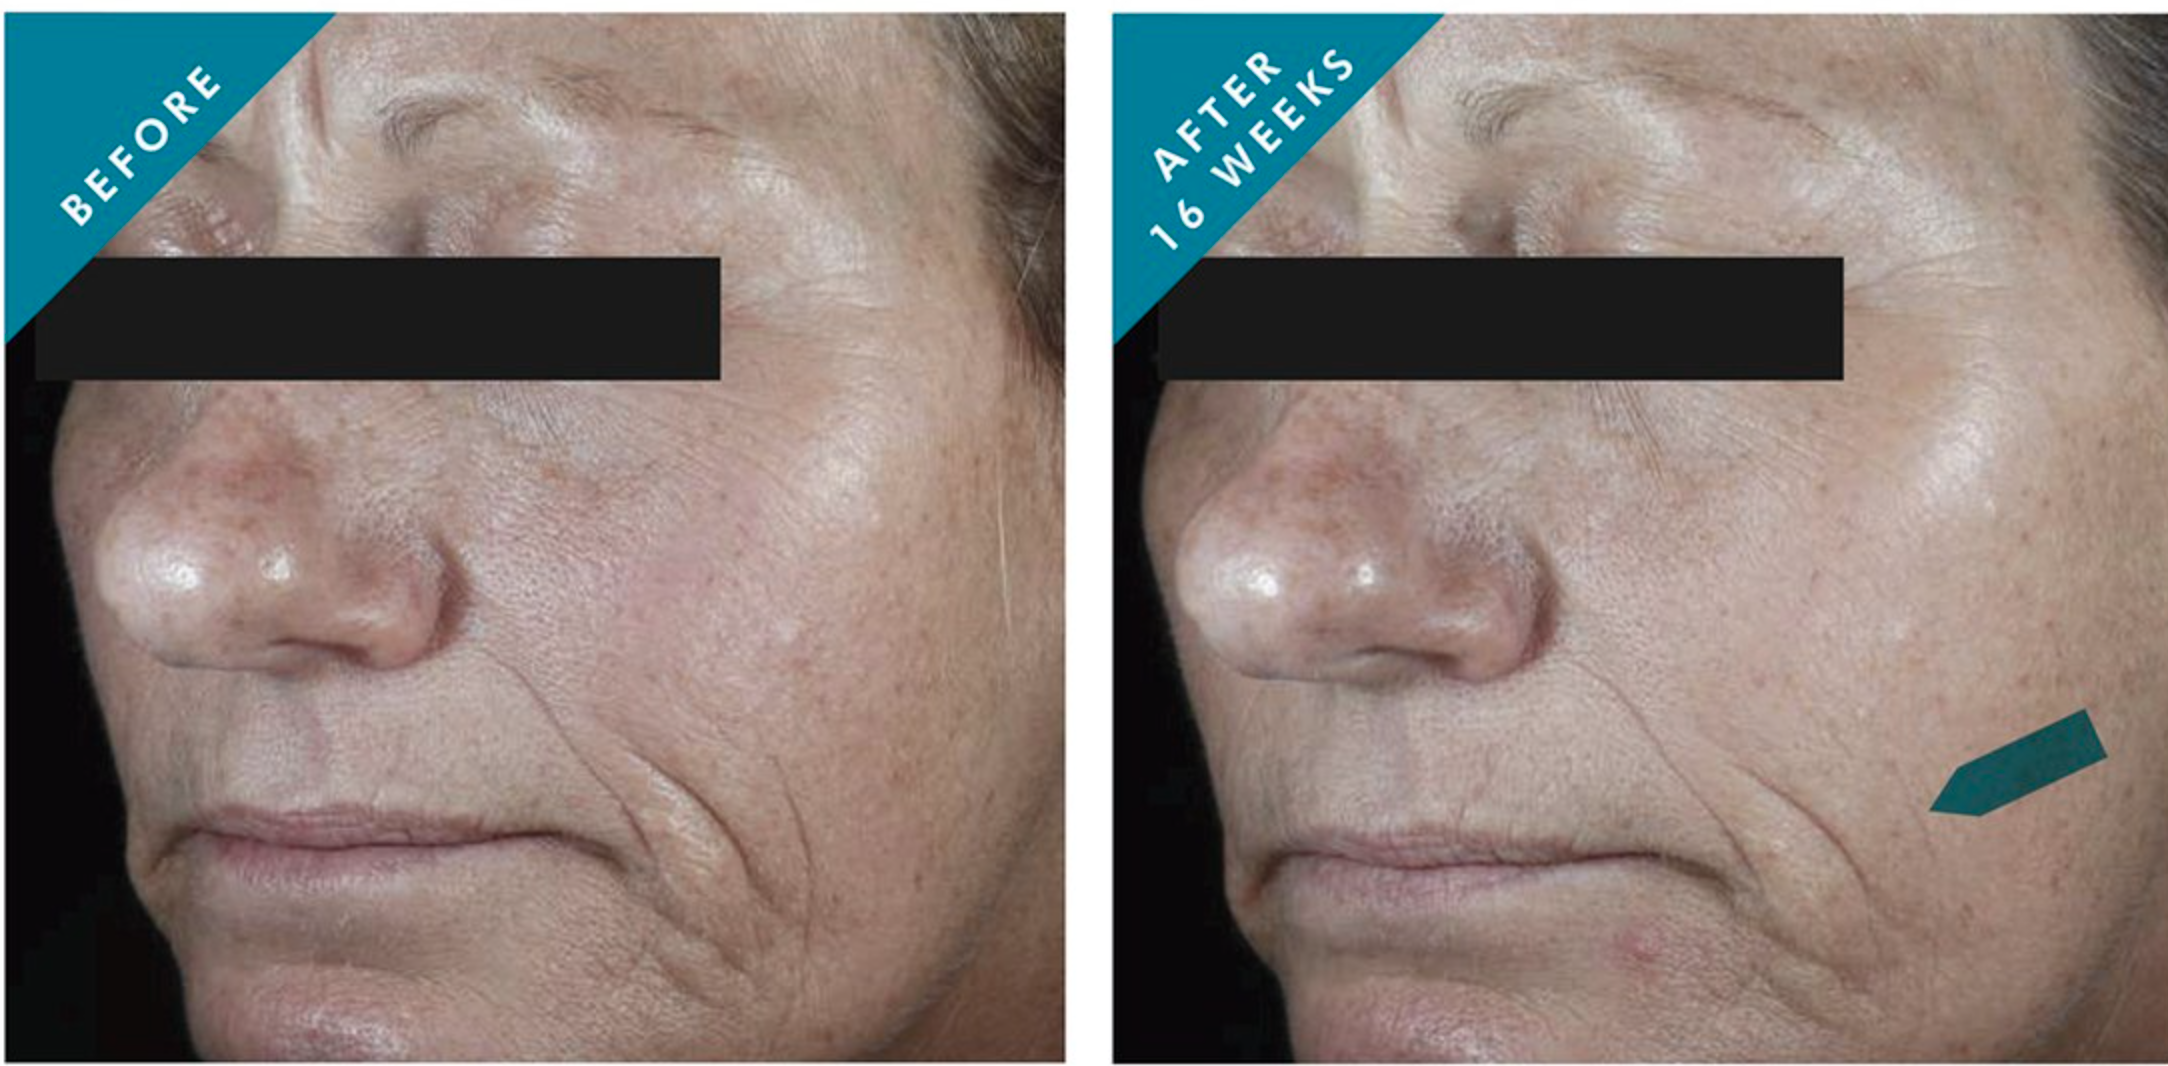 before and after of a person with deep mouth wrinkles before use, and diminished wrinkles after use